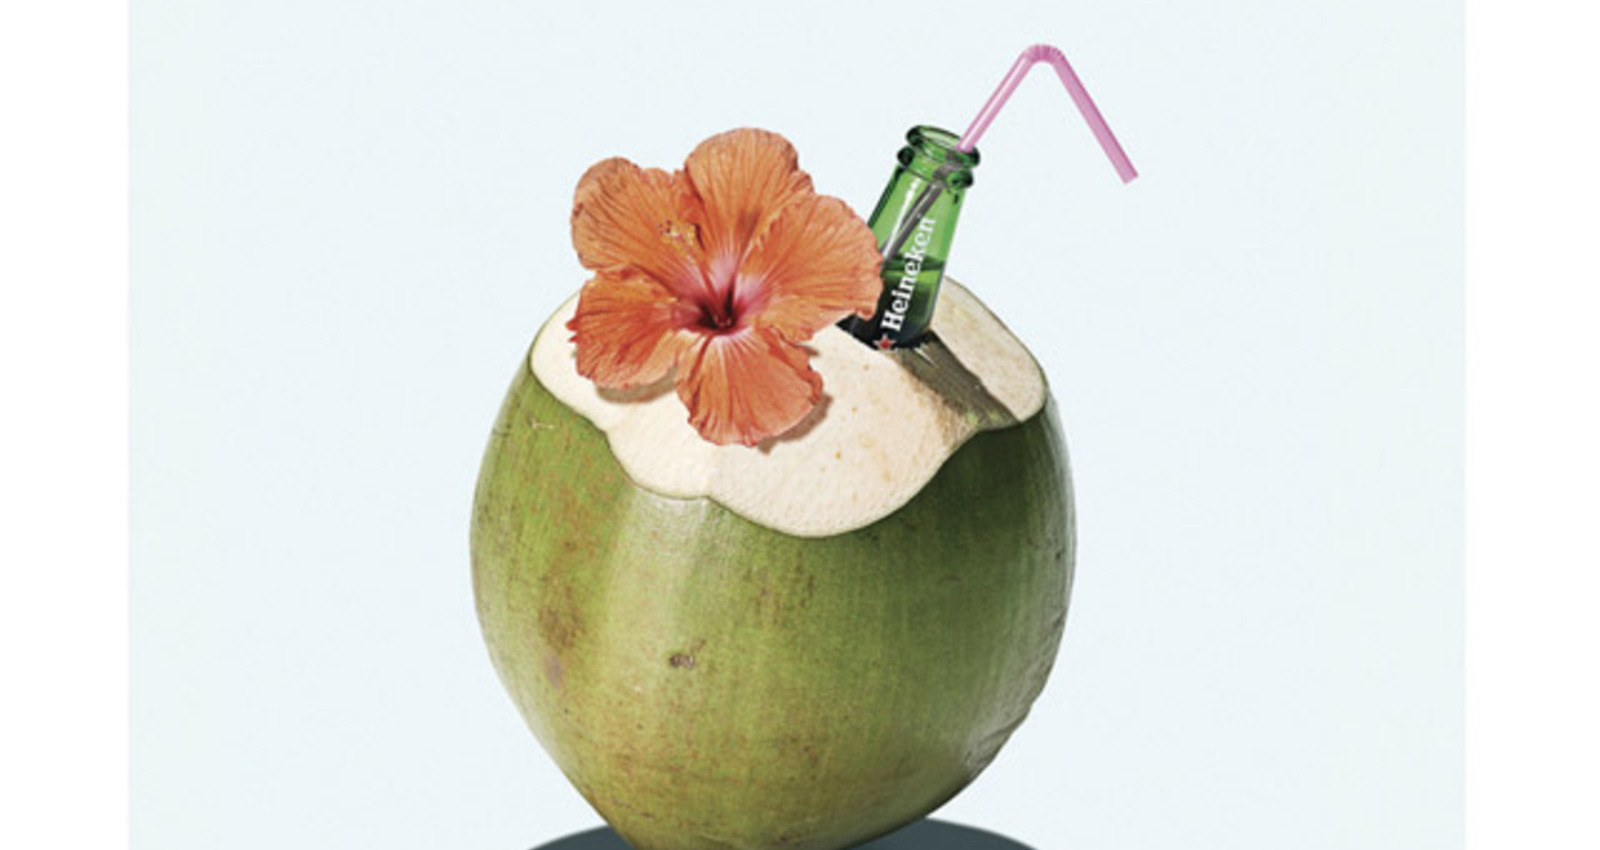 The Unofficial Drink of the World